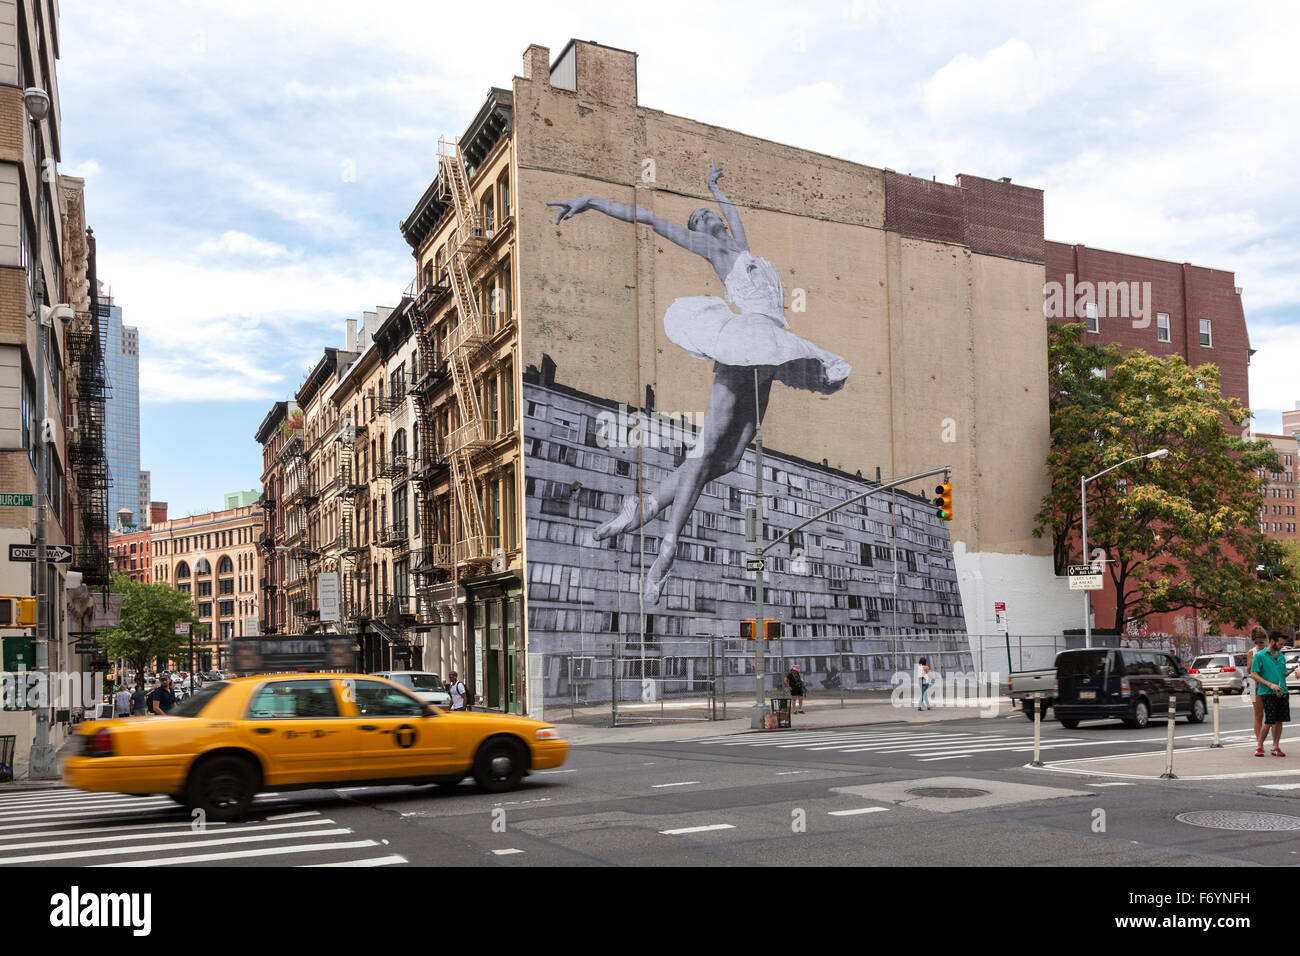 Mural of the ballerina Lauren Lovette, by French street artist JR, on the side of the building at 100 Franklin St, Stock Photo